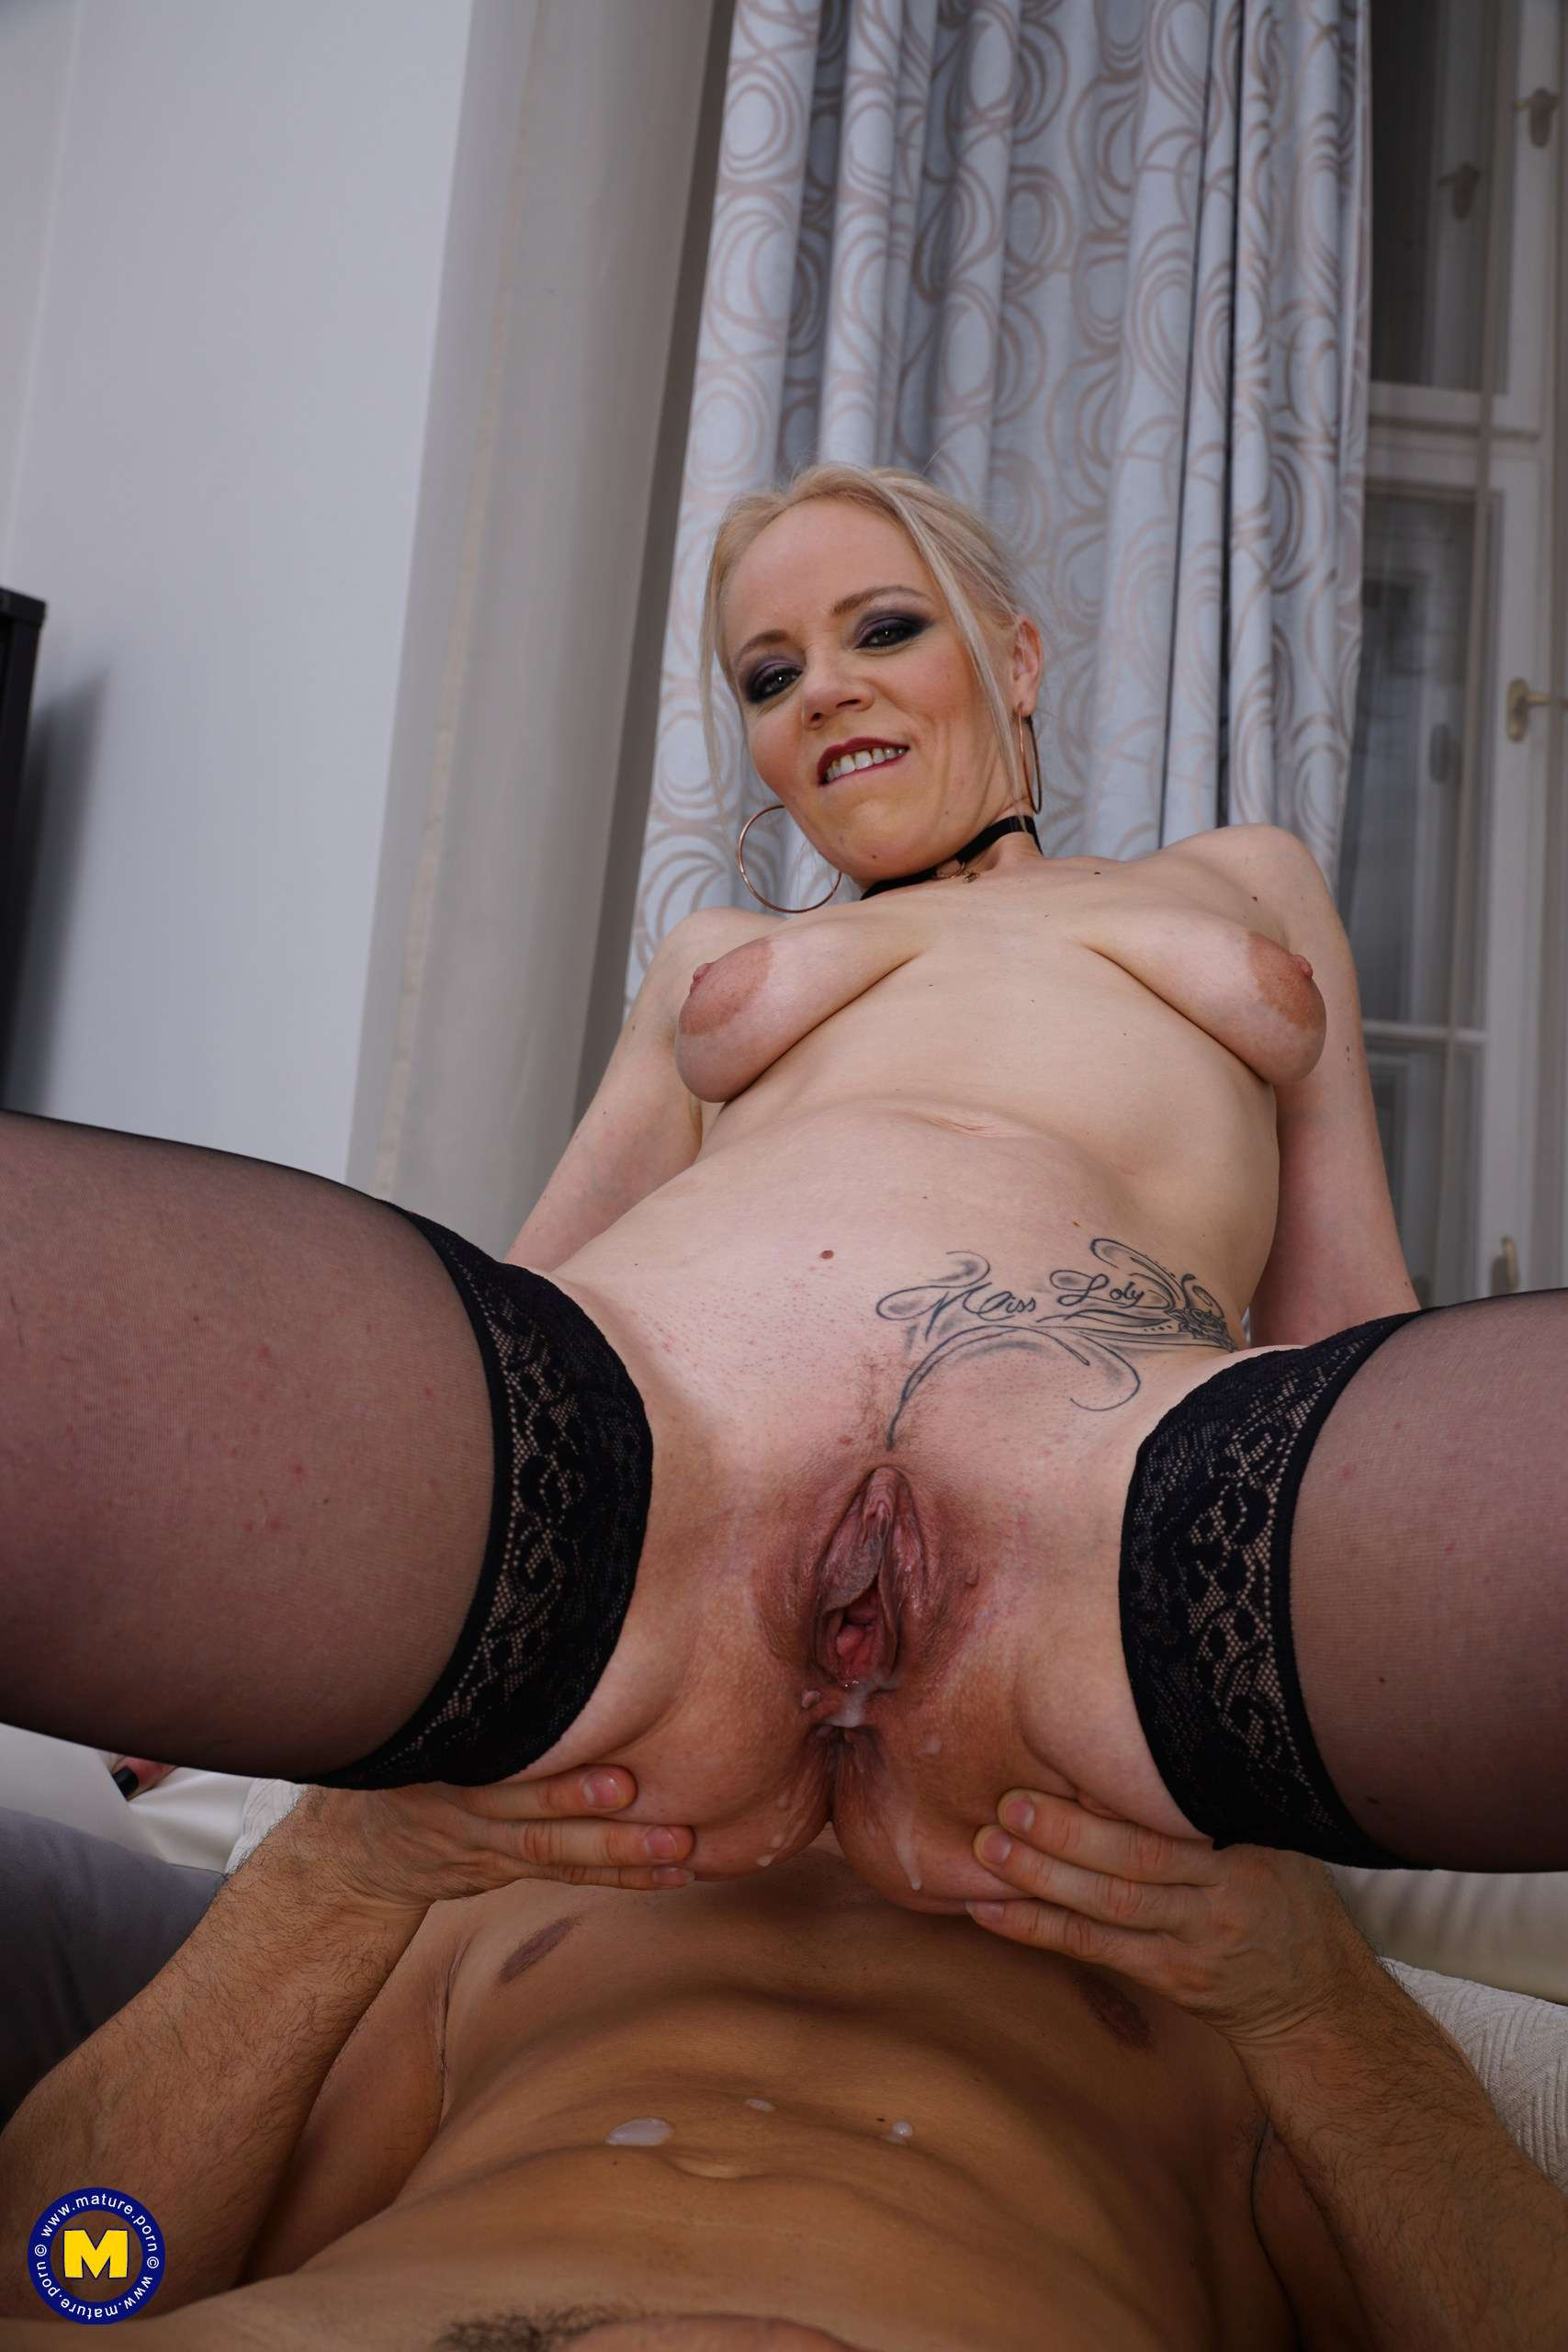 This hot mom goes anal and gets a warm creampie